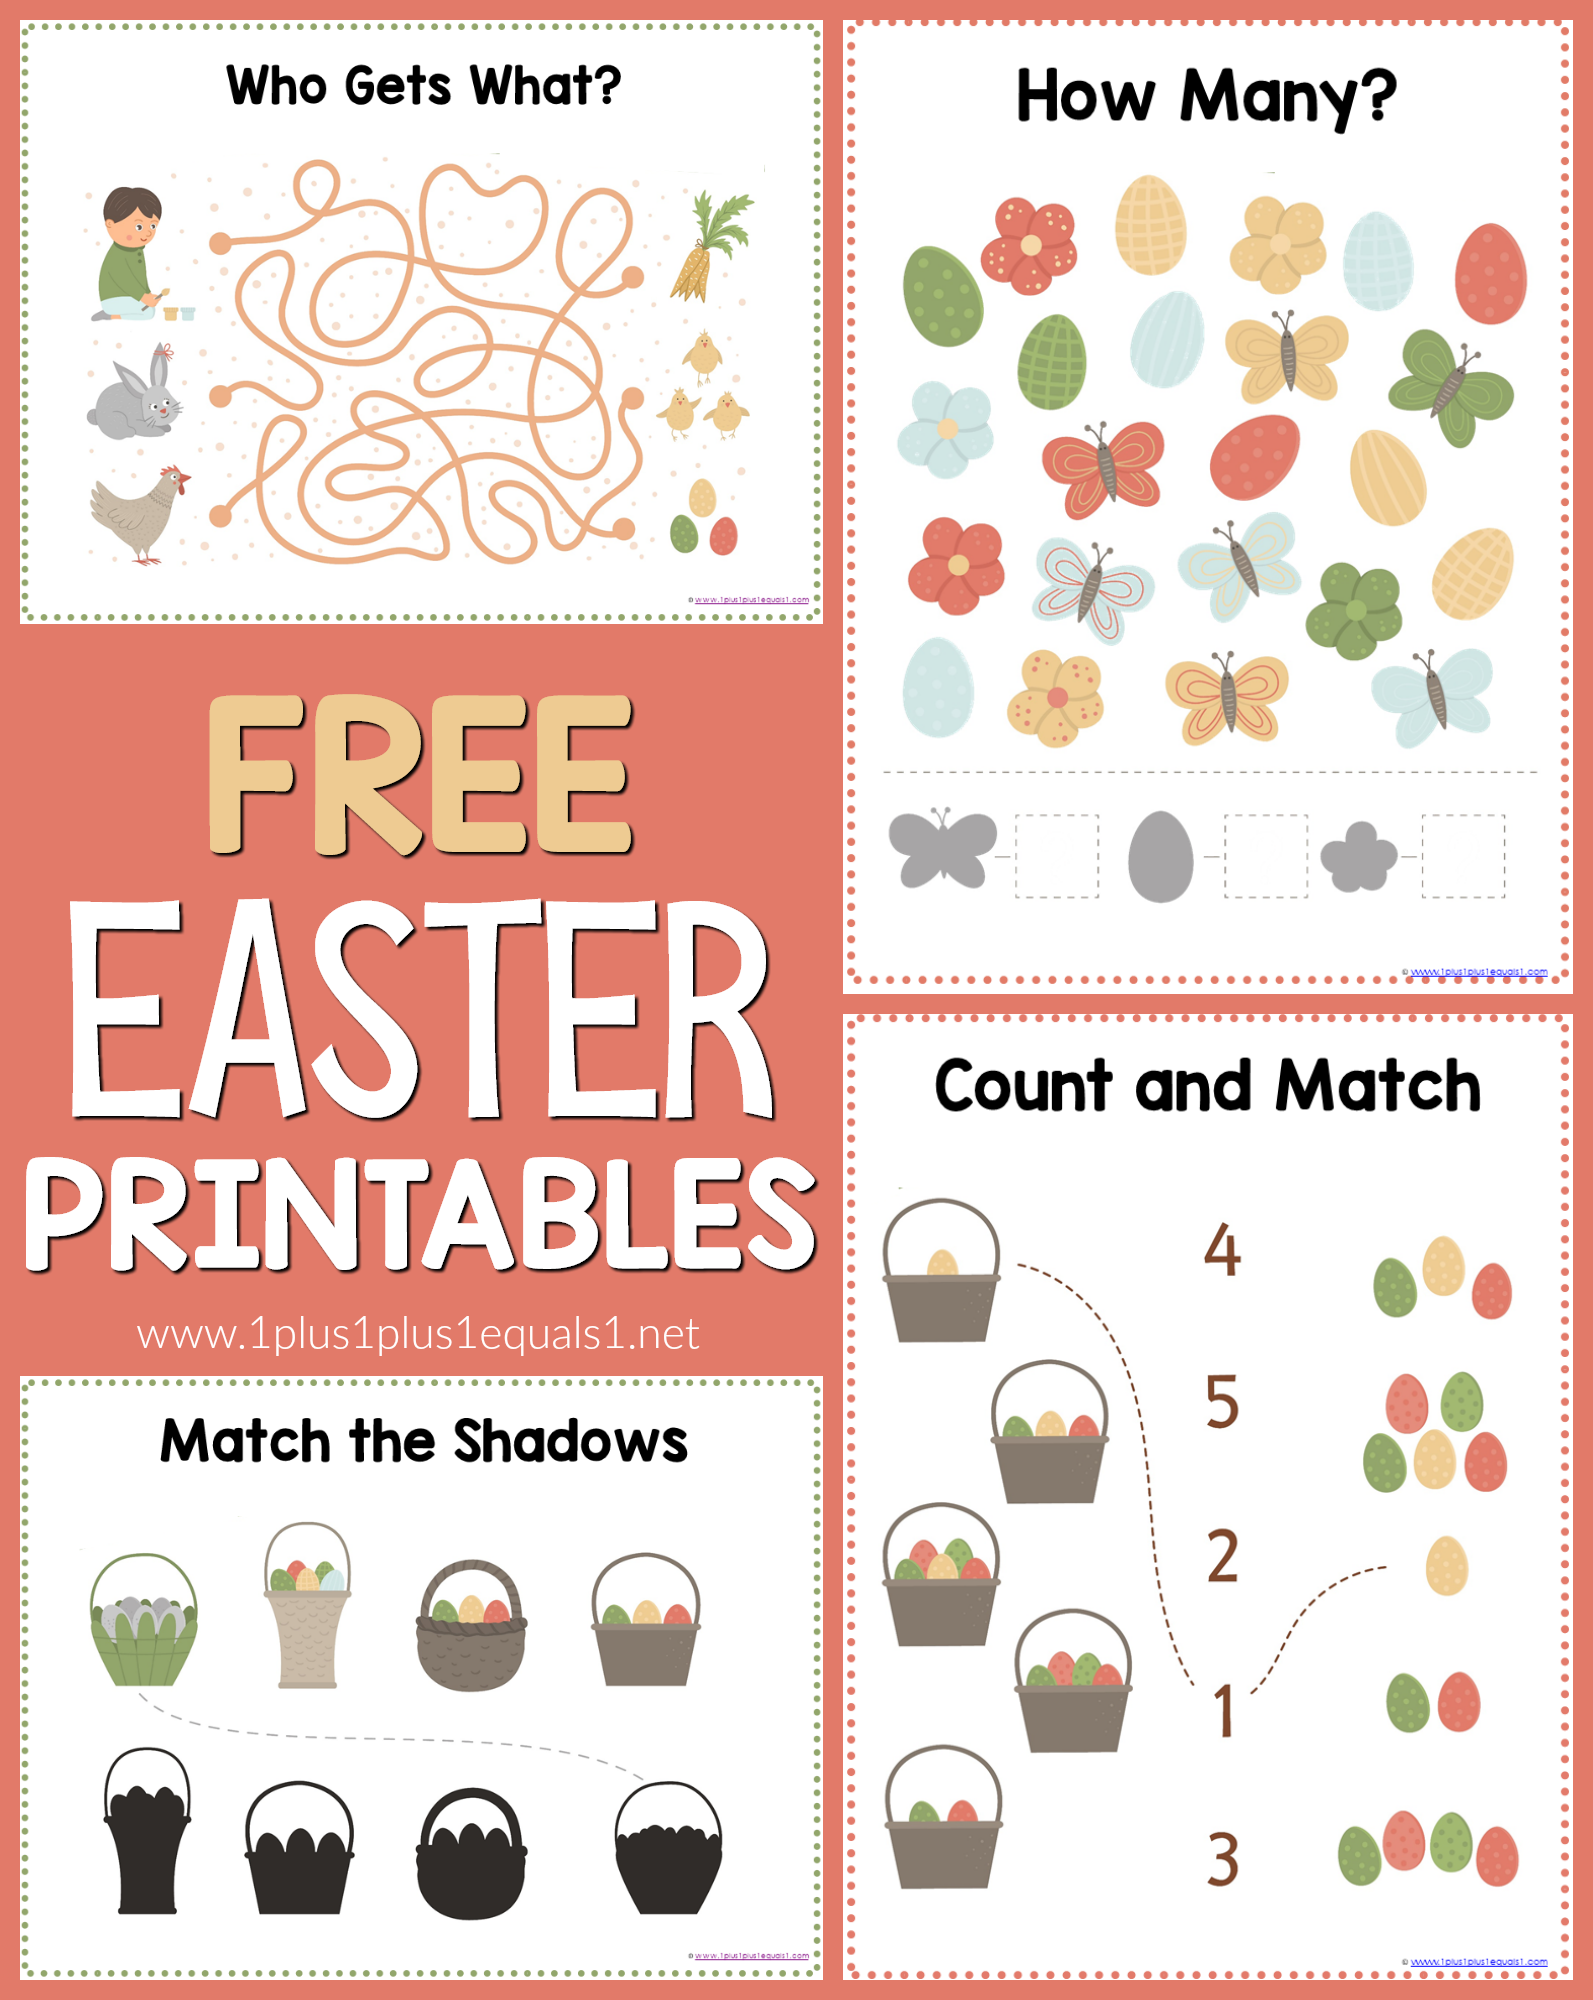 Pin by julia on Colorings | Easter coloring pages, Easter ... | 2000x1593